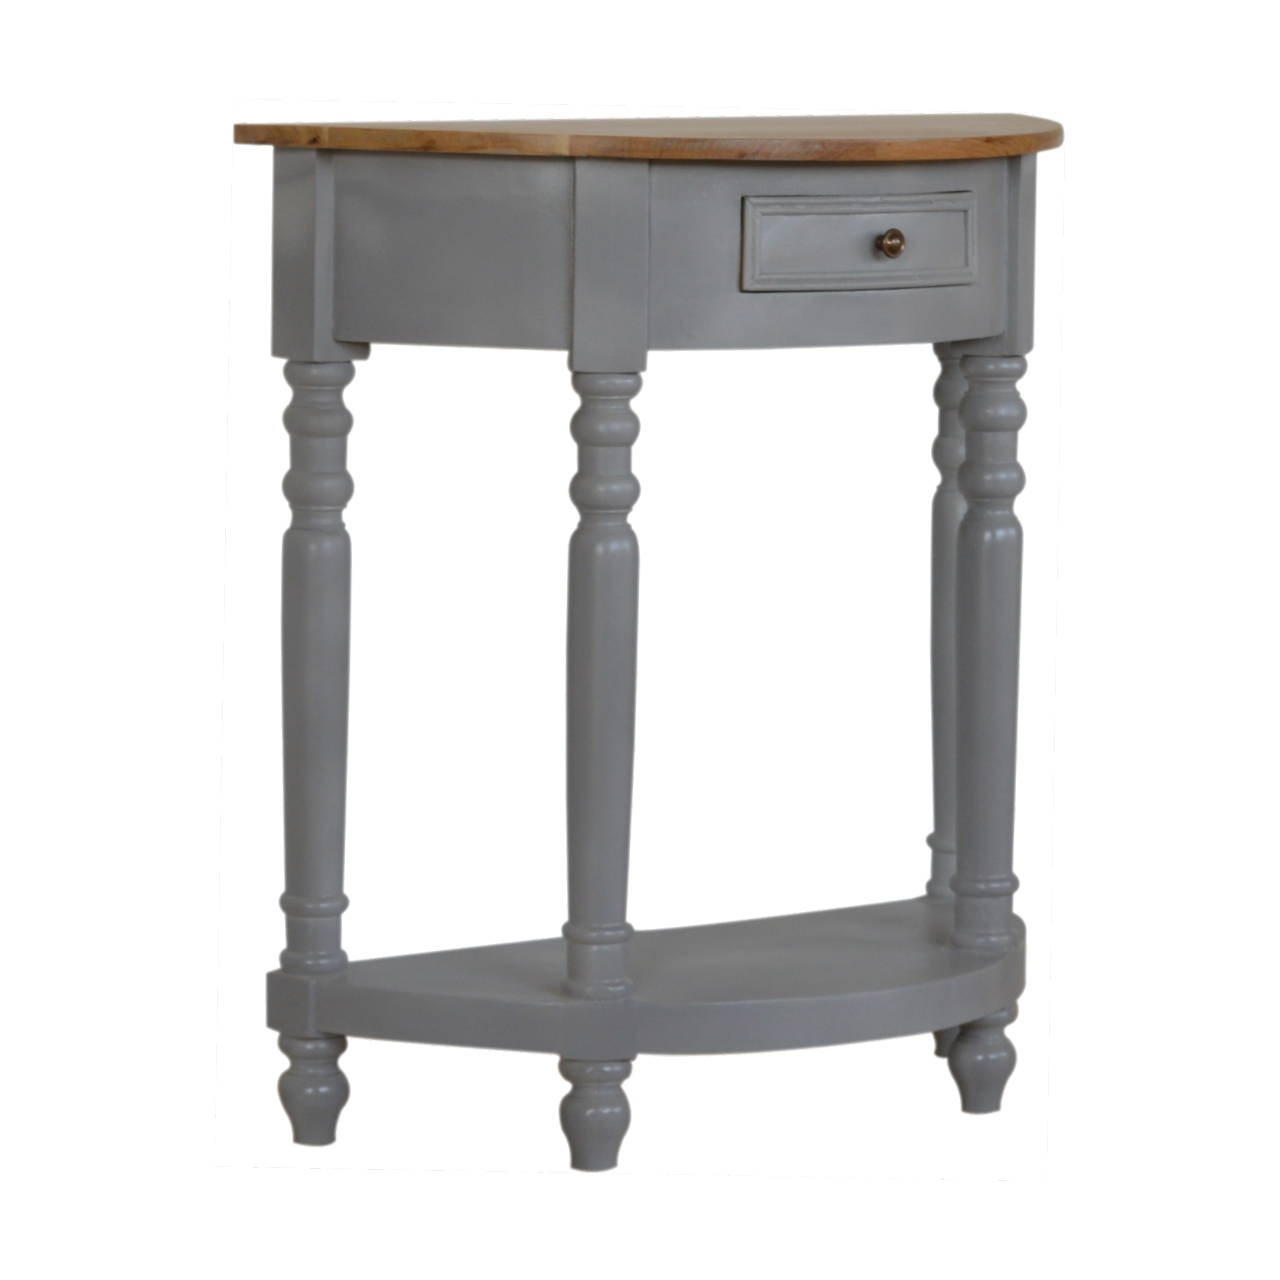 IN505-Grey-Painted-1-Drawer-Serpentine-Table-with-Turned-Legs-2